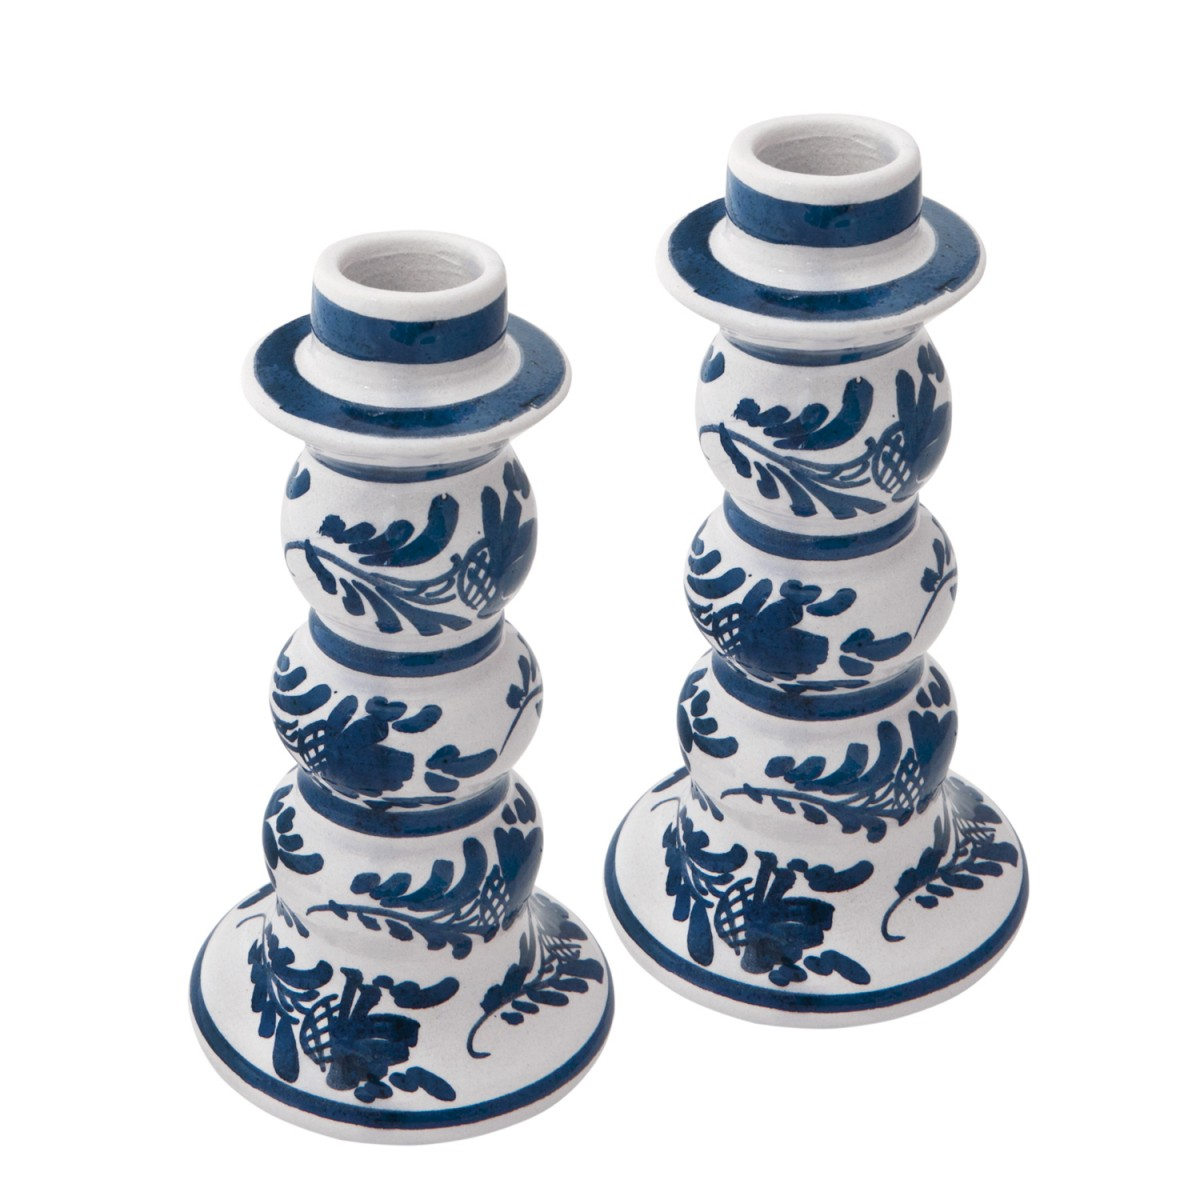 Skyriana Candle Holders, Ceramic Blue and White Candle holders - 1